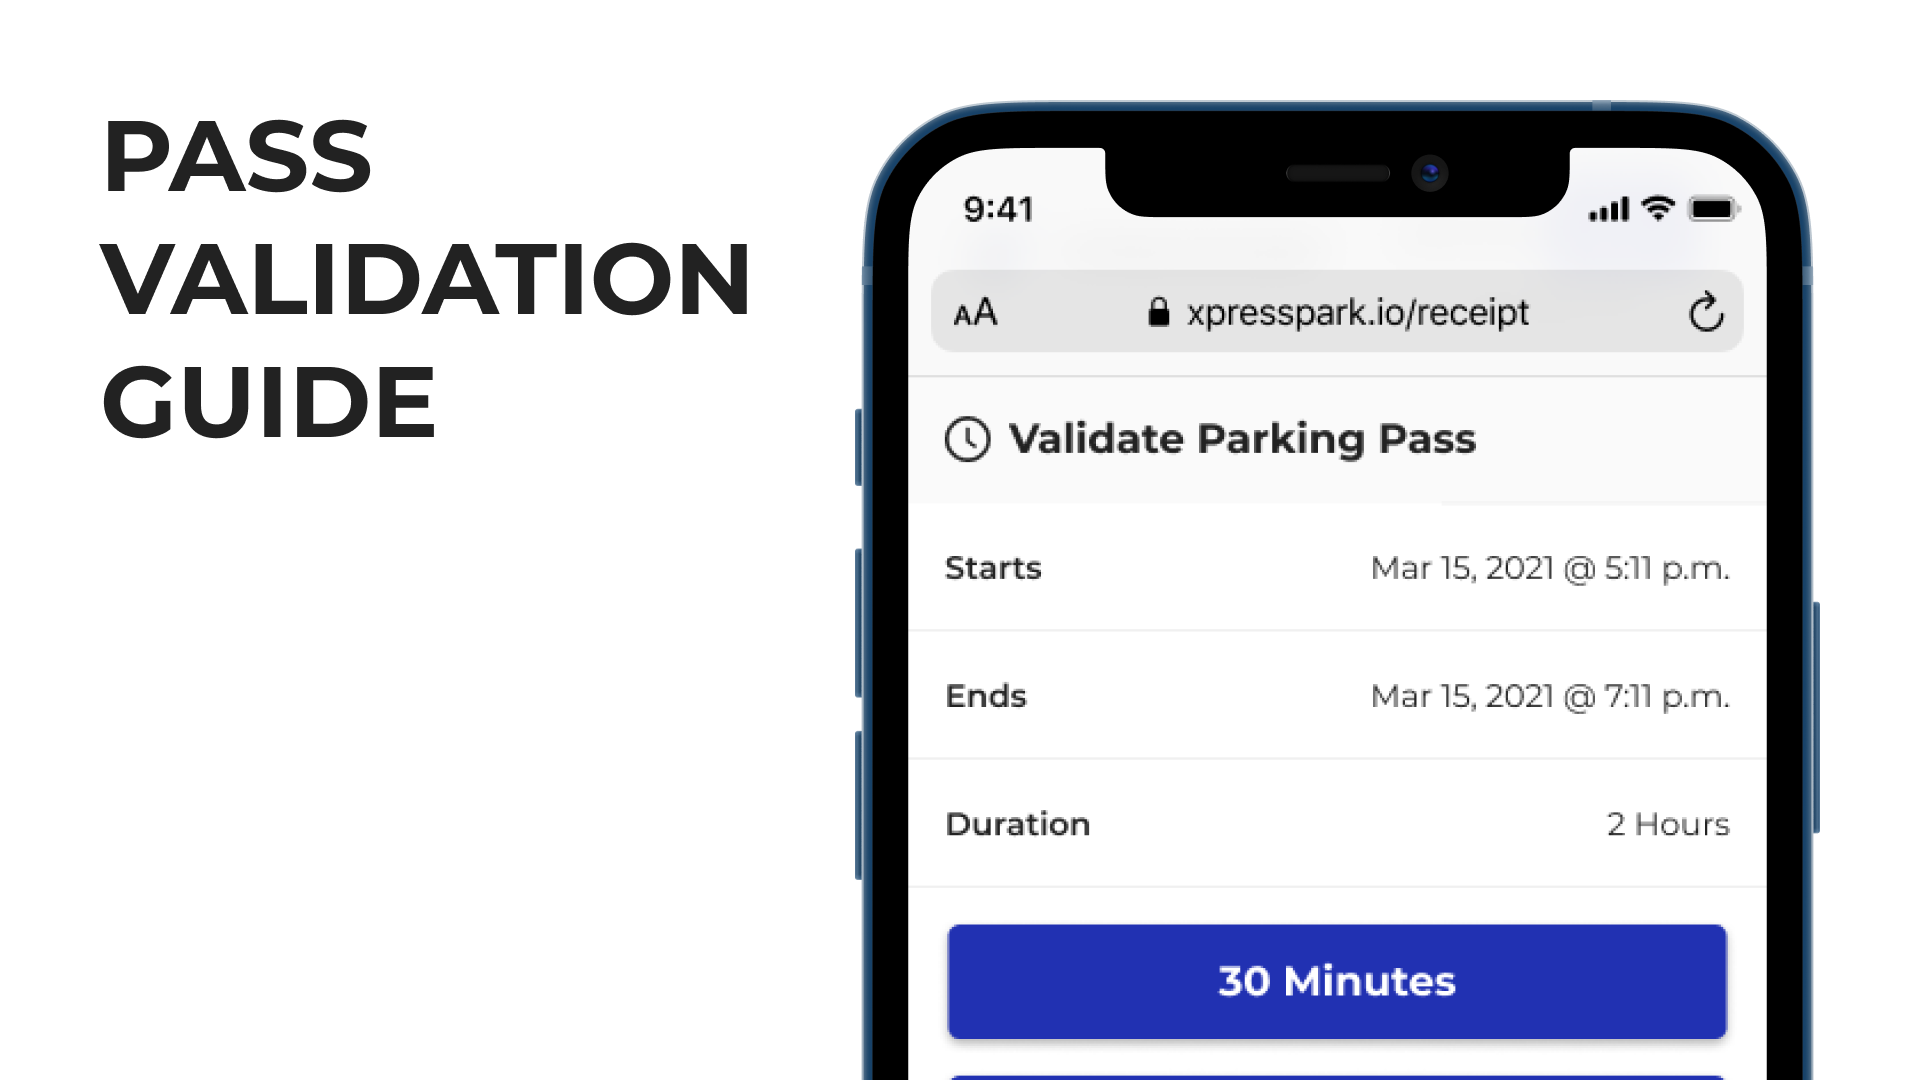 pass validation guide